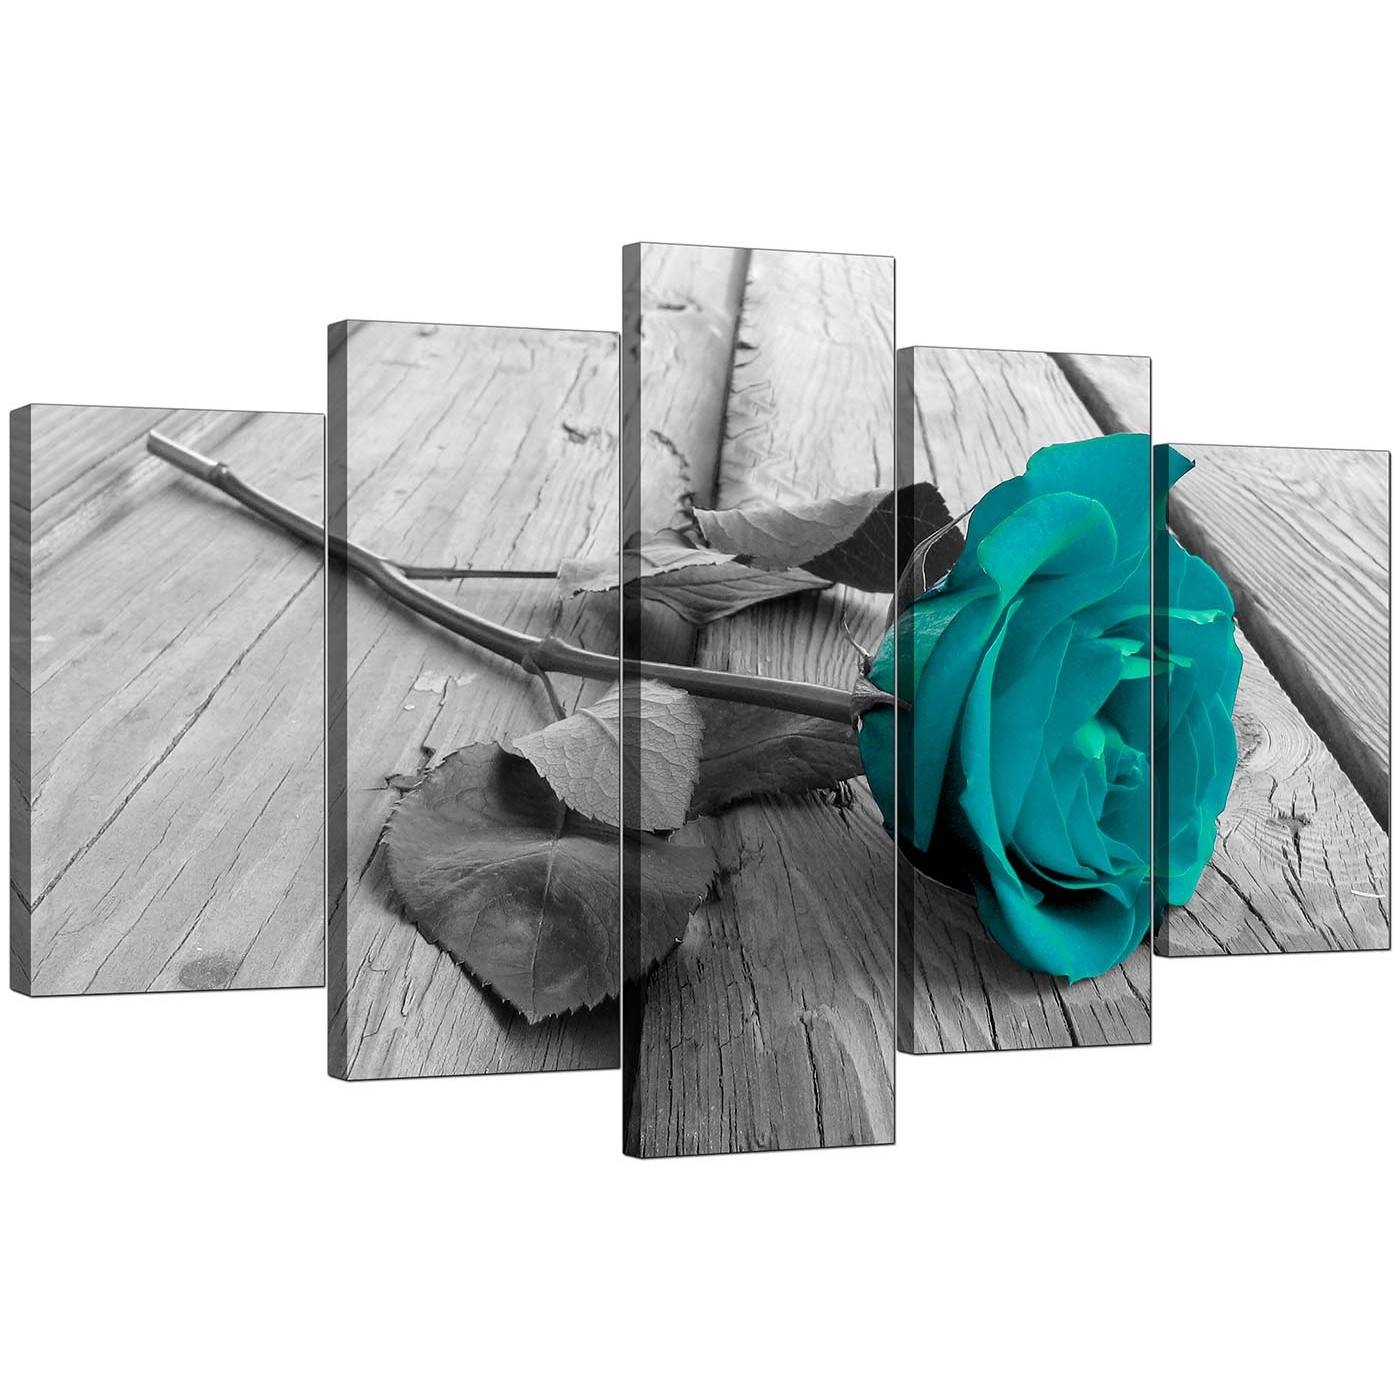 Extra Large Teal Rose Canvas Prints Set Of 5 In Black & White Inside Latest Cheap Black And White Wall Art (View 14 of 20)